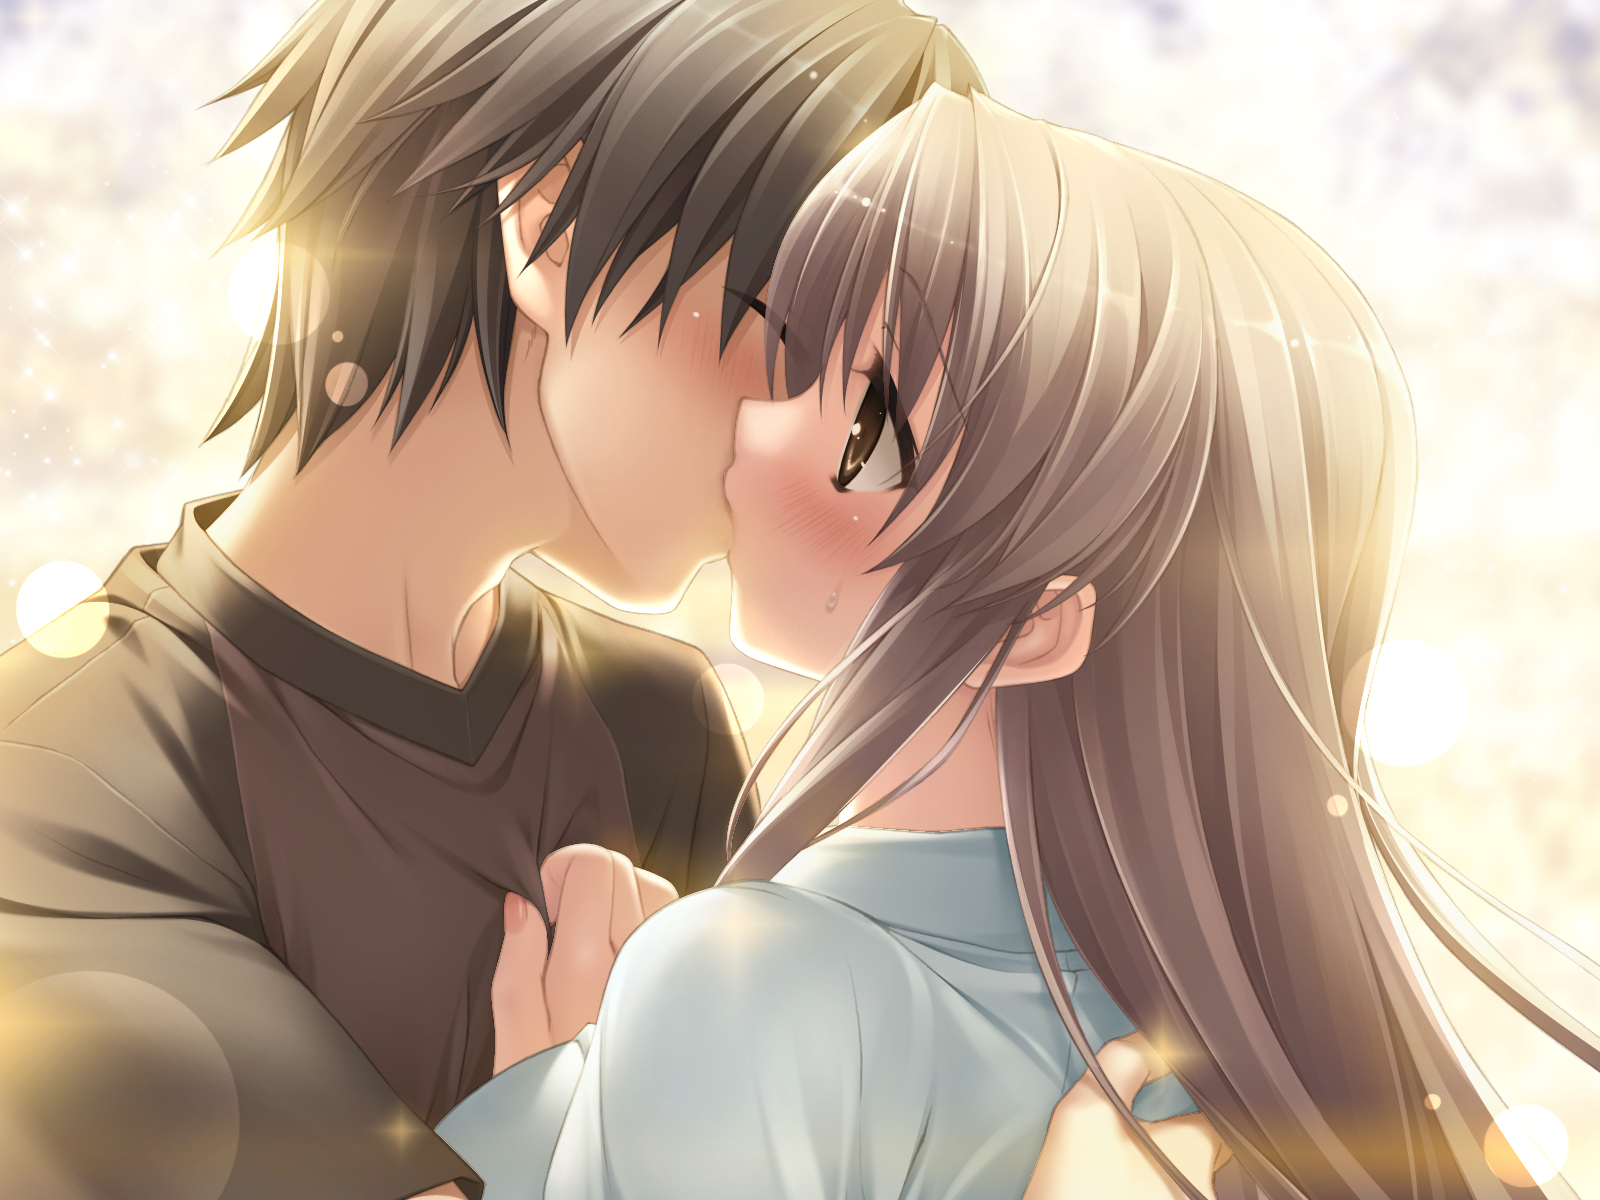 Anime kiss in love